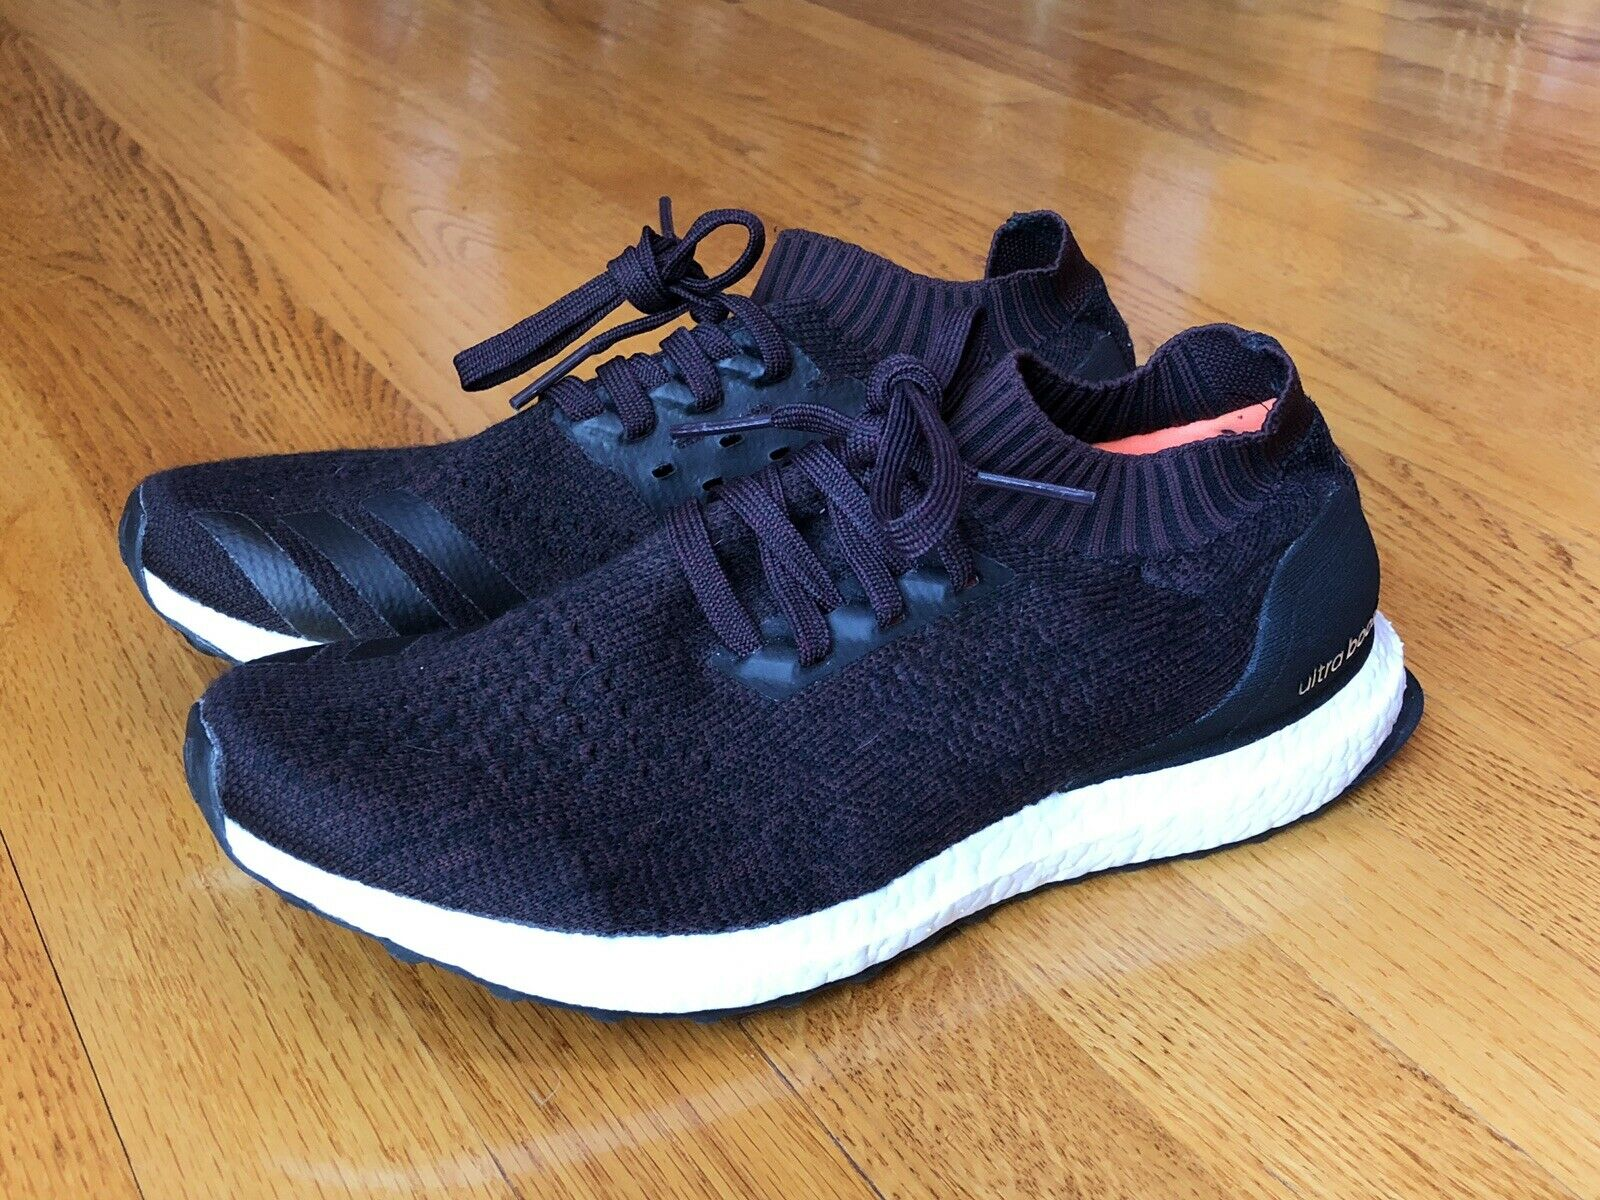 a3eb8b57db8 NEW Adidas Ultra Boost Uncaged Mens 9 Dark Burgundy BY2552 (Retail ) nmd